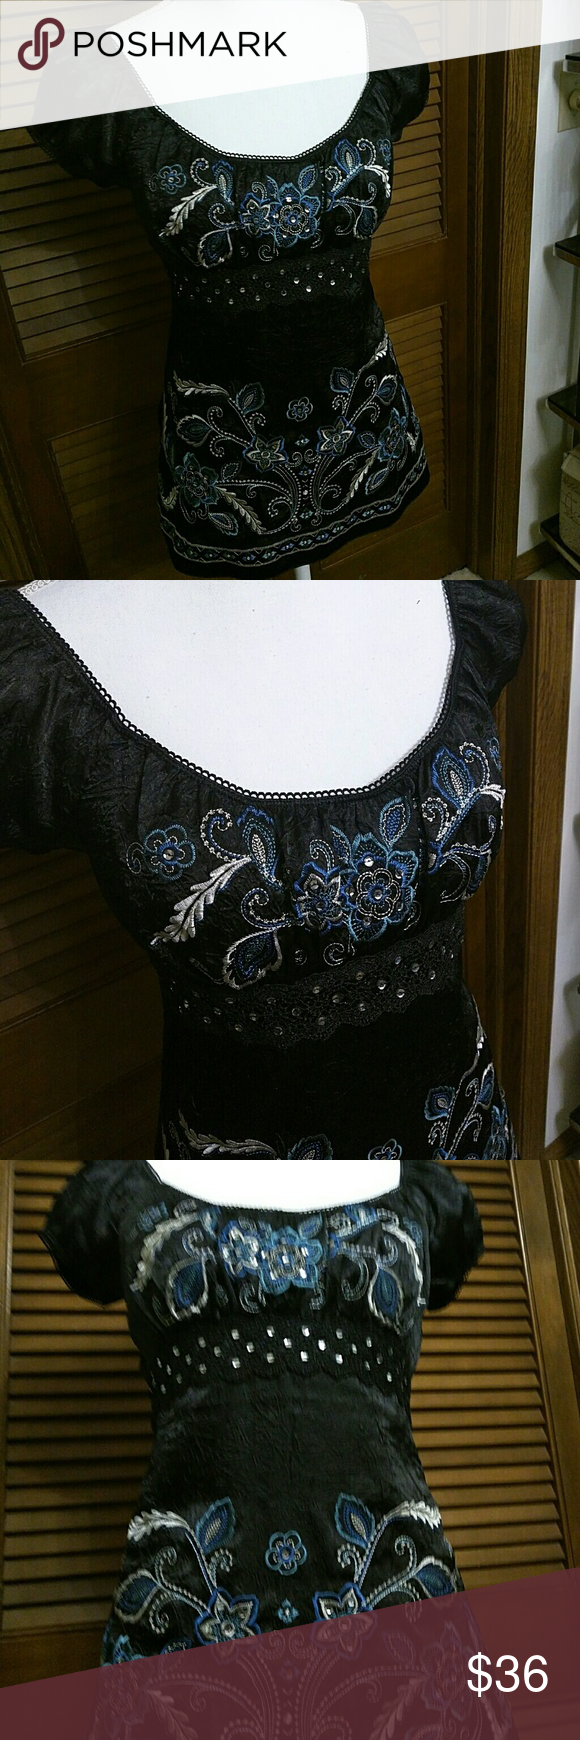 Embroidered Top with rhinestones details. Gorgeous top with embroidery and rhinestones details, lace details. Flawless. Worn once. Zipper on the side. Ties on the back. Brand tag cut off(was bothering me) don't remember brand. Anthropologie for viewing only. Anthropologie Tops